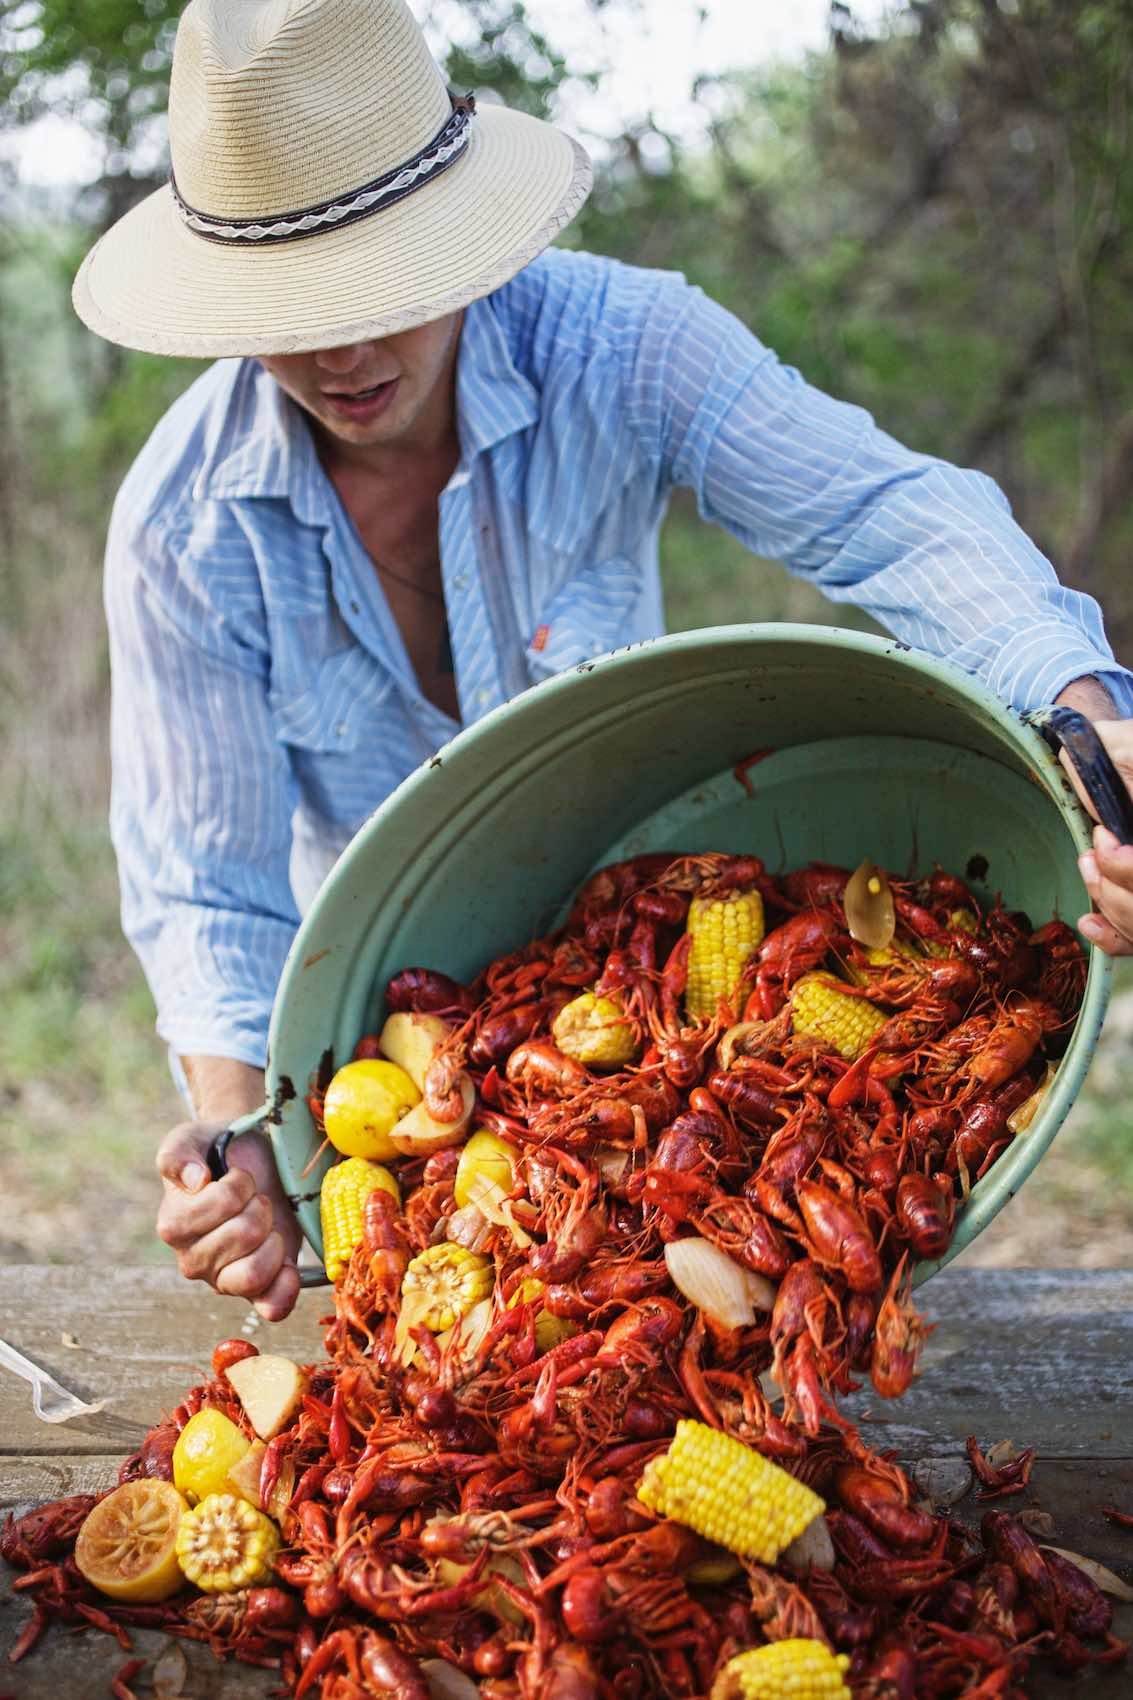 Jody Horton Photography - Crawfish boil spread onto picnic table.